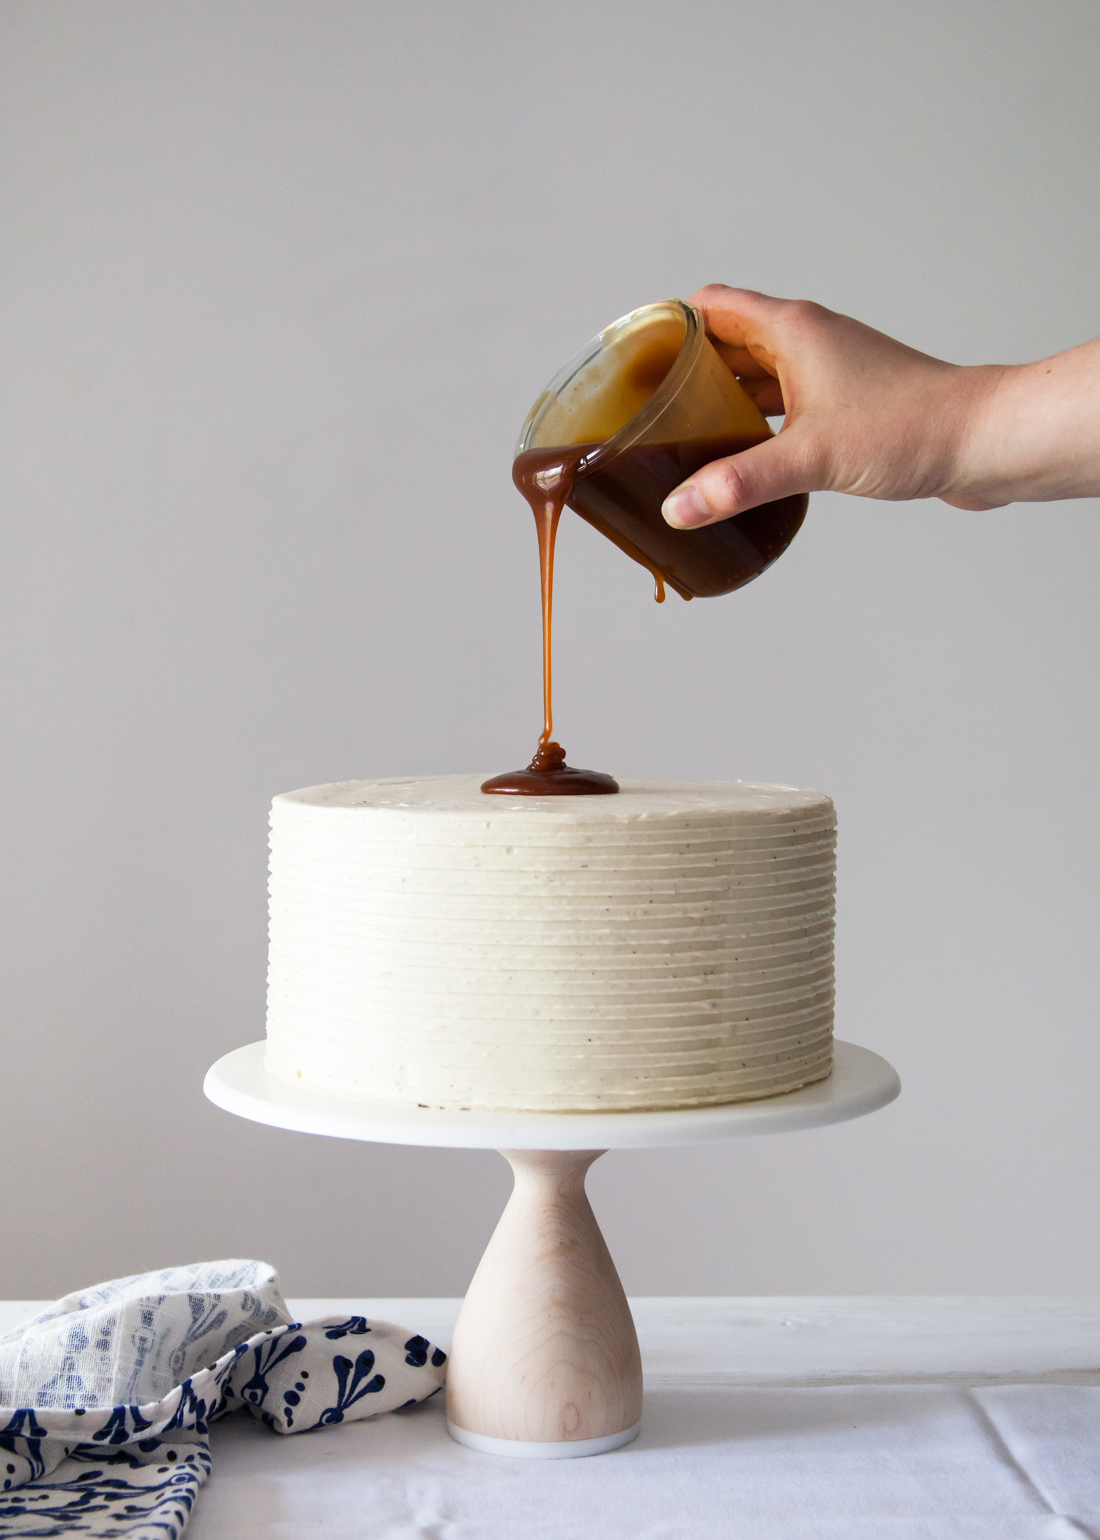 London Fog Cake with Earl Grey buttercream and salted caramel sauce.